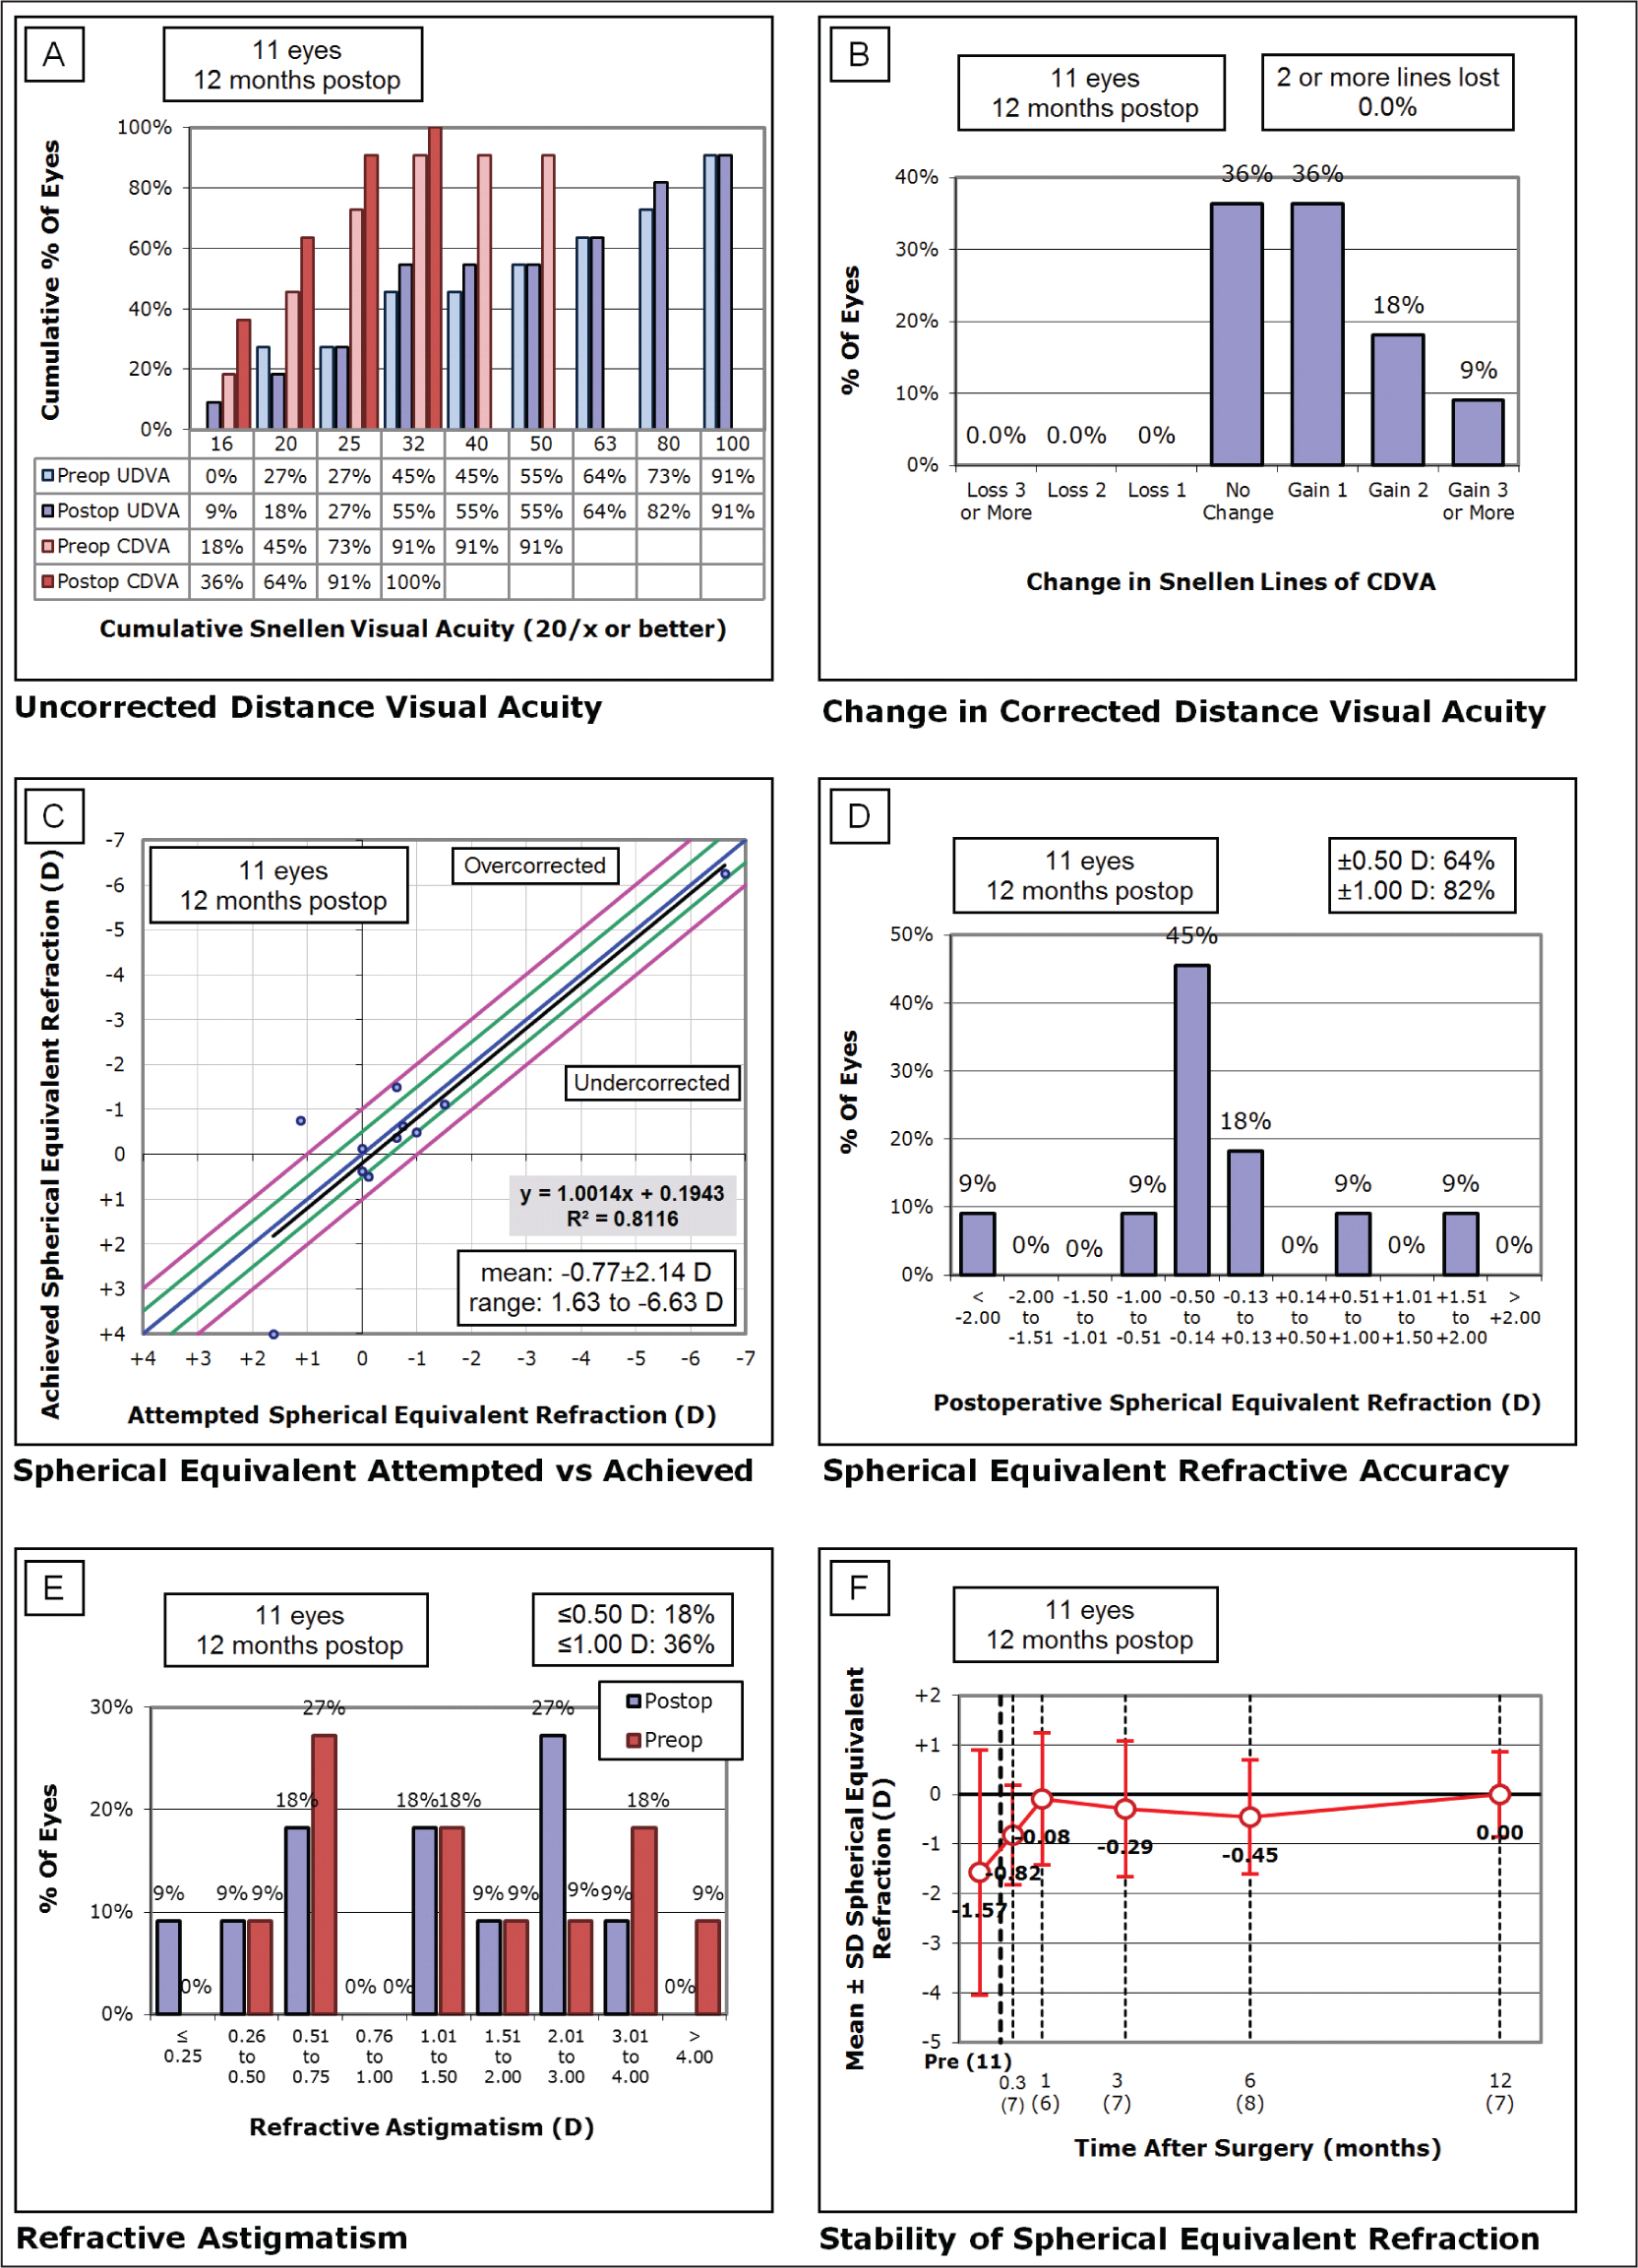 Visual outcomes of the transepithelial phototherapeutic keratectomy (TE-PTK) with refractive treatment group: (A) preoperative and postoperative cumulative uncorrected distance visual acuity (UDVA), (B) within eye change in corrected distance visual acuity (CDVA), (C) spherical equivalent refraction attempted against that achieved, (D) spherical equivalent refractive accuracy, (E) preoperative and postoperative refractive astigmatism, and (F) stability of spherical equivalent refraction over time.